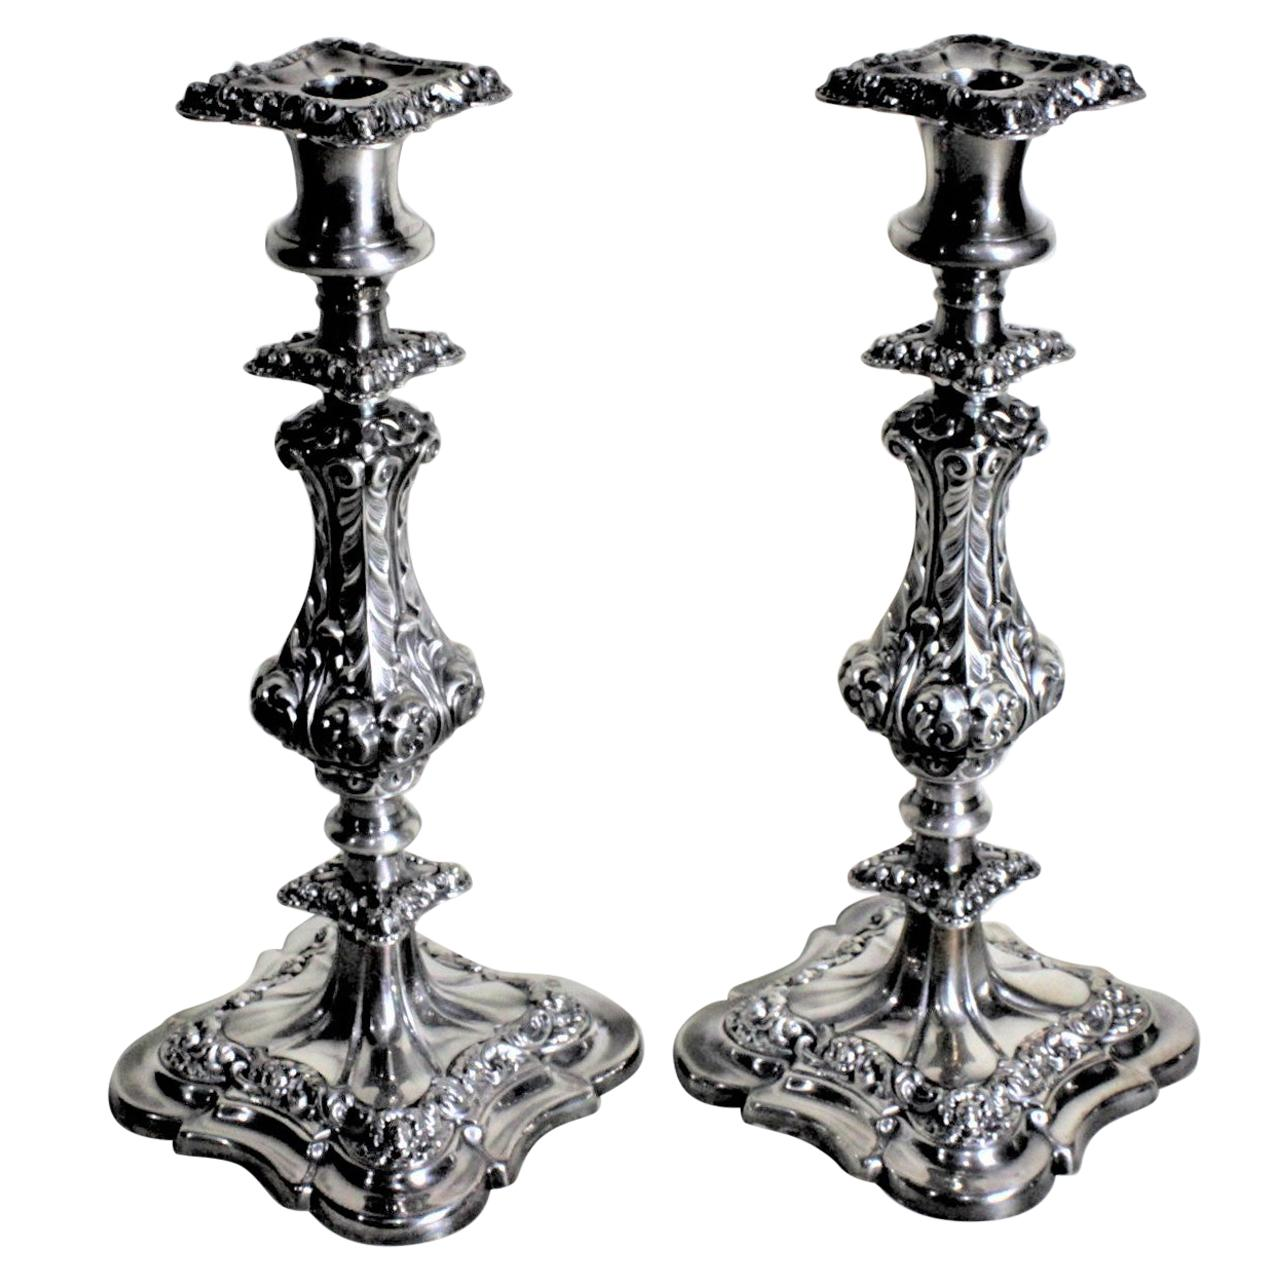 Pair of Antique English Silver Plated Candlesticks with Chased Leaf Decoration